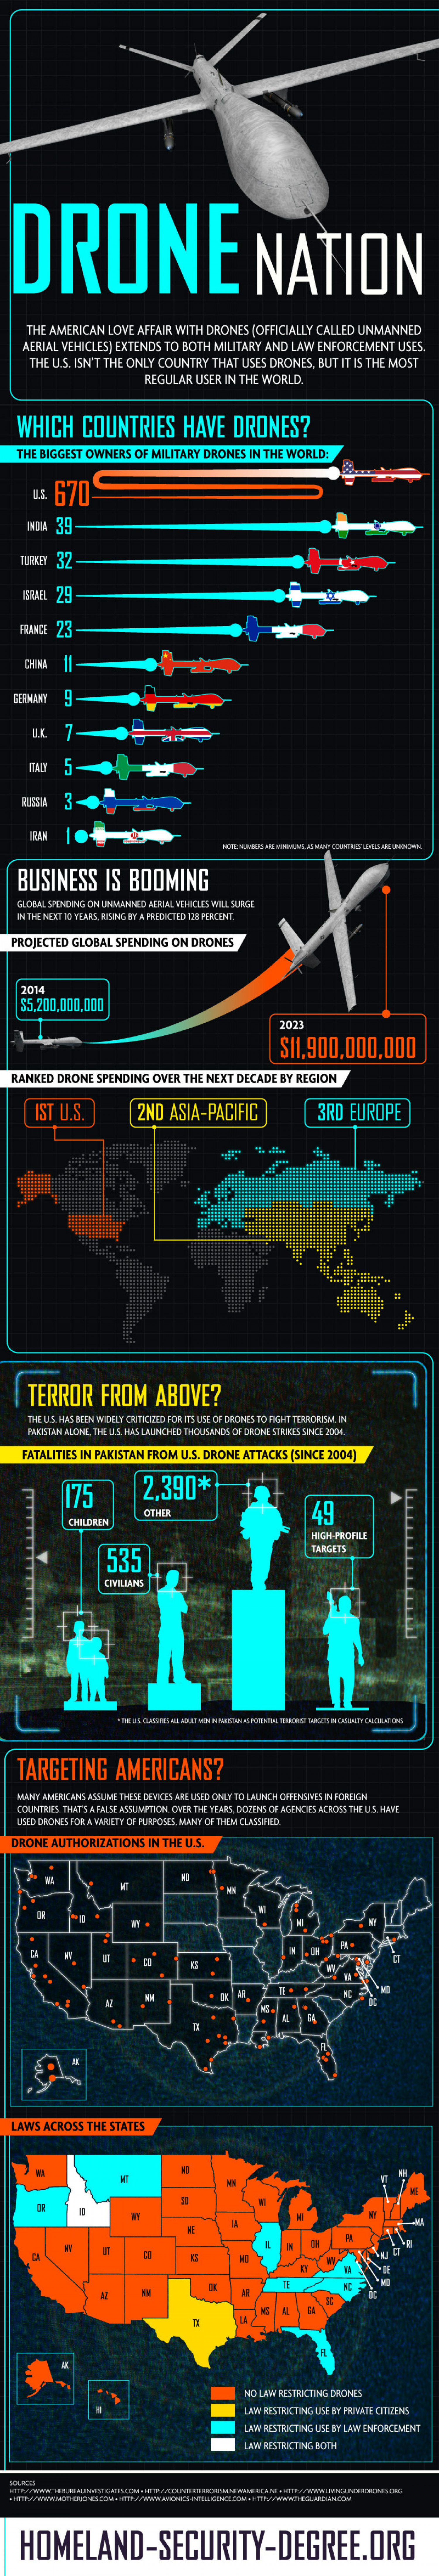 Drone Nation Infographic